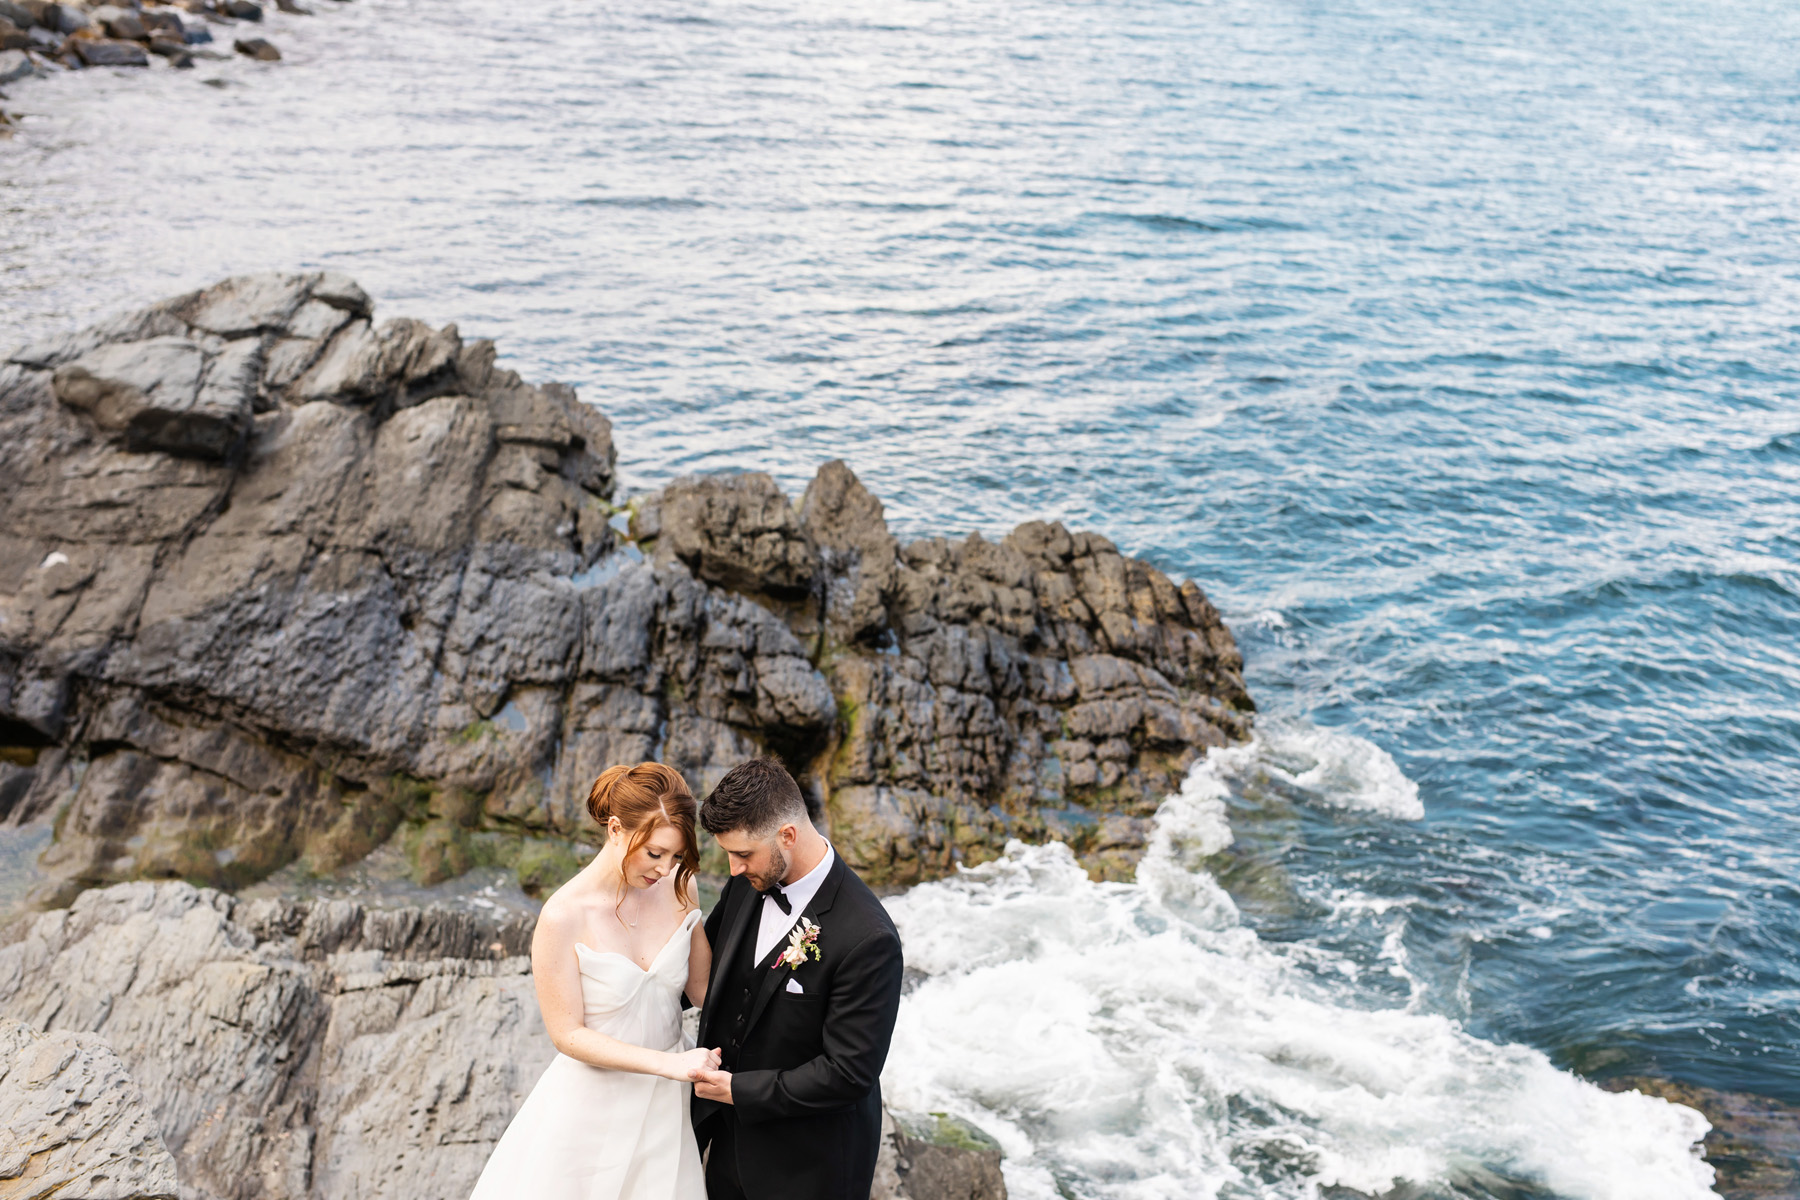 Newport Rhode Island Wedding by Monika Normand Photography